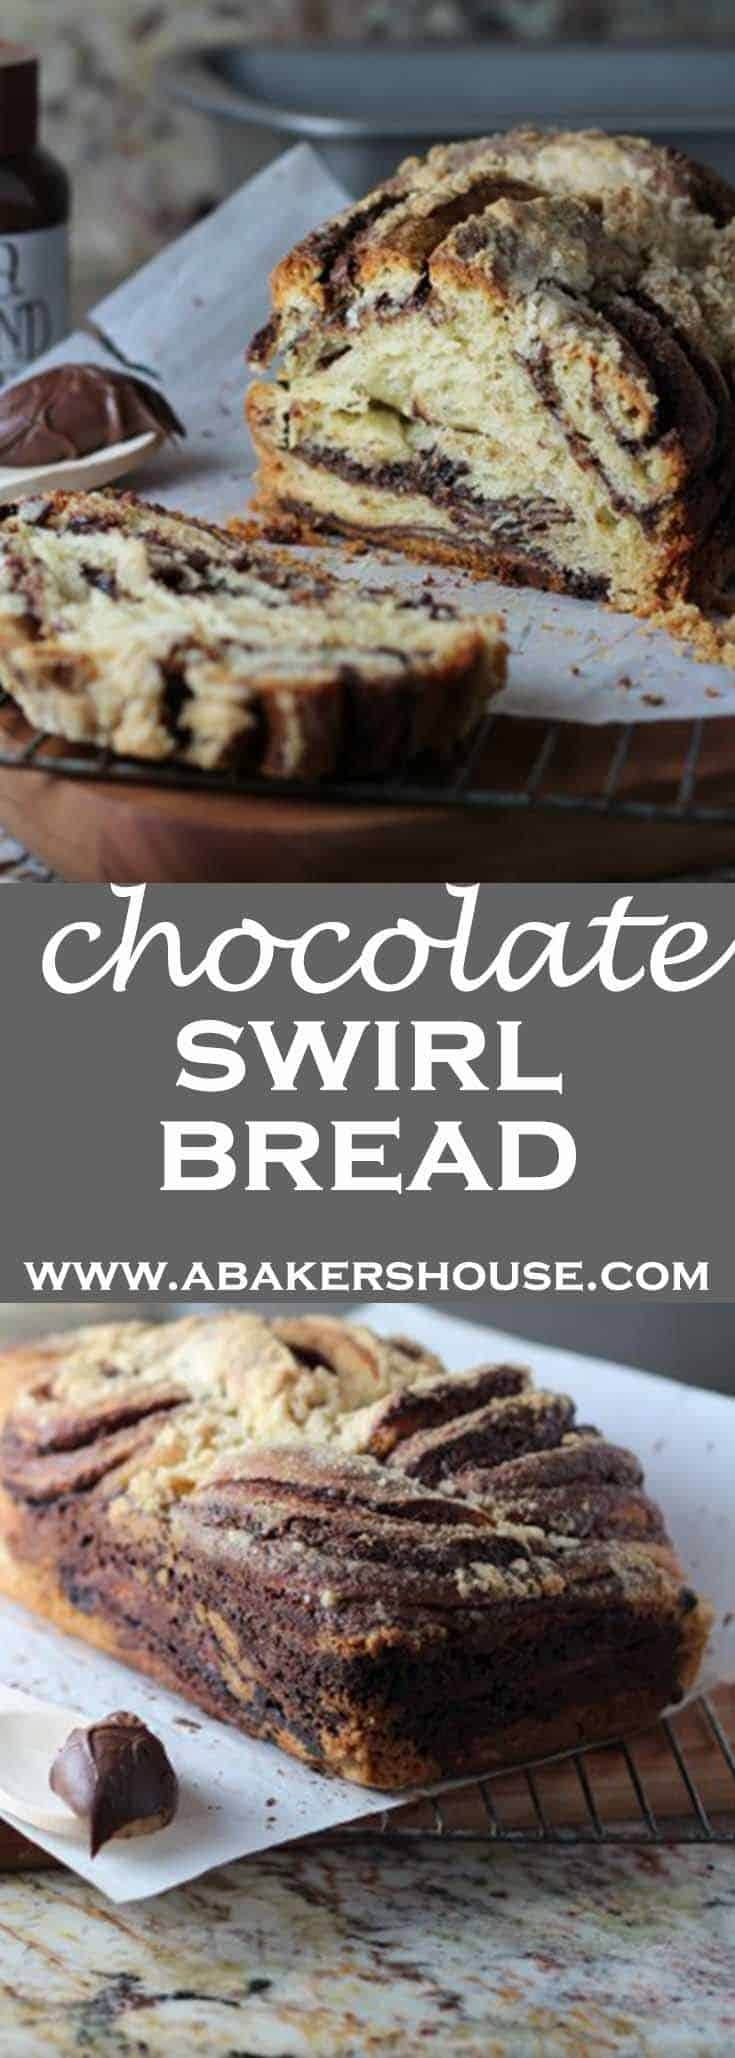 Chocolate Swirl Bread is an impressive homemade bread that is actually easy to make. The chocolate filling is layered into the dough then rolled up tightly into a log. A few simple steps let you twist and braid the dough into a swirled mix of dough and chocolate. #abakershouse #chocolate #chocolatebread #homemadebread